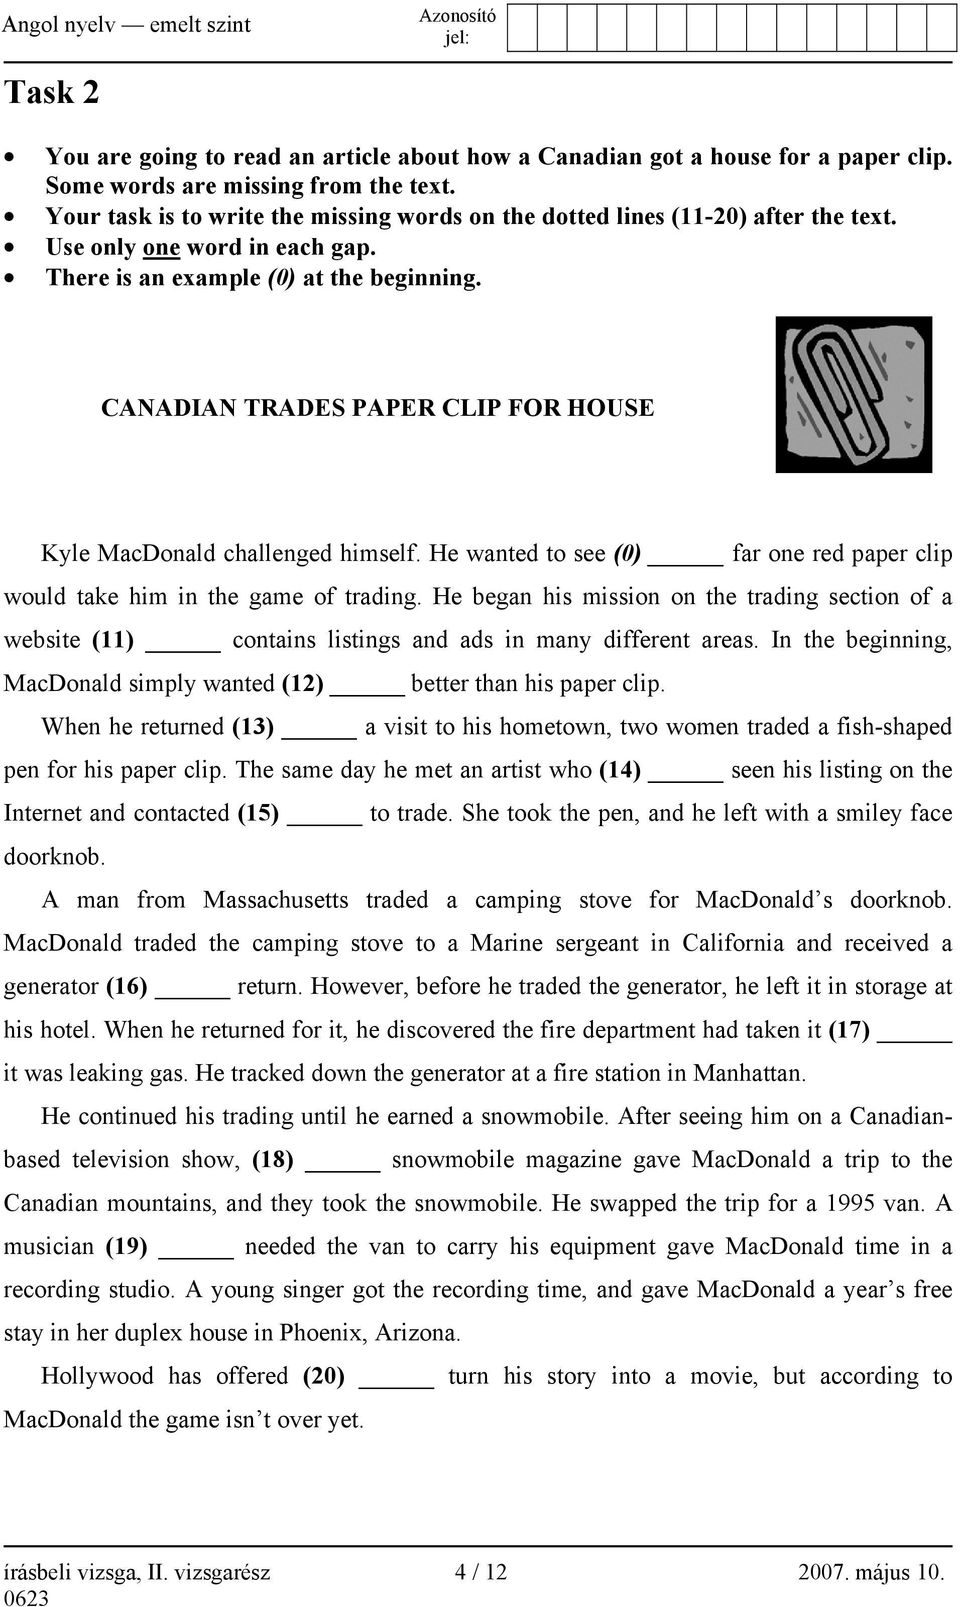 CANADIAN TRADES PAPER CLIP FOR HOUSE Kyle MacDonald challenged himself. He wanted to see (0) far one red paper clip would take him in the game of trading.